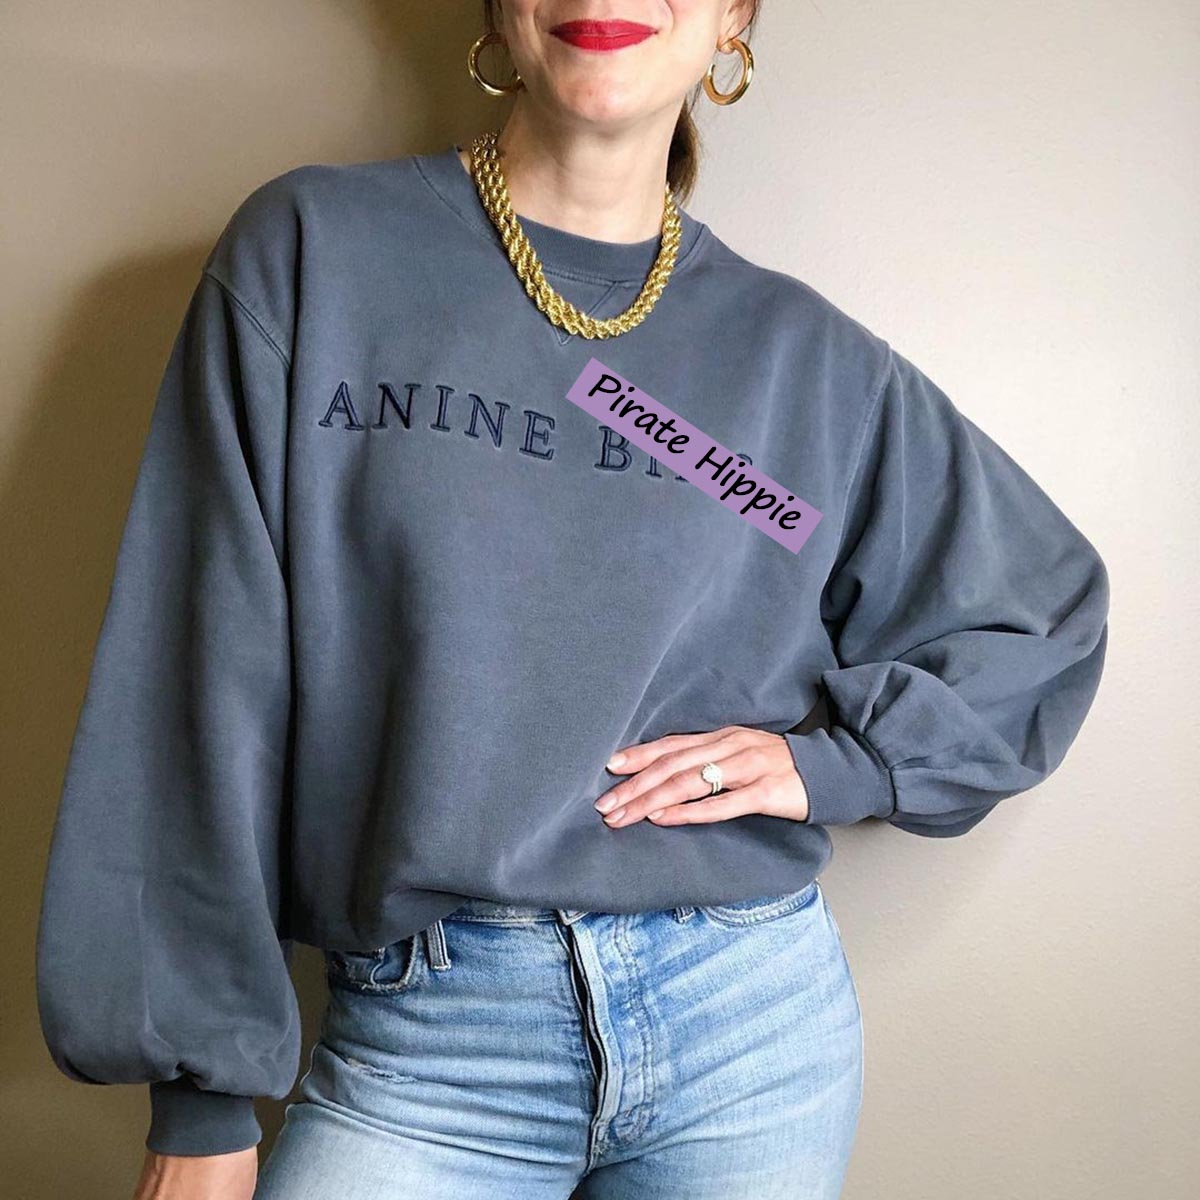 Letter Embroidered Sweatshirt Women Autumn Winter Puff Sleeve O Neck Cotton Pullover Casual Vintage Street Style Hoodie 2020